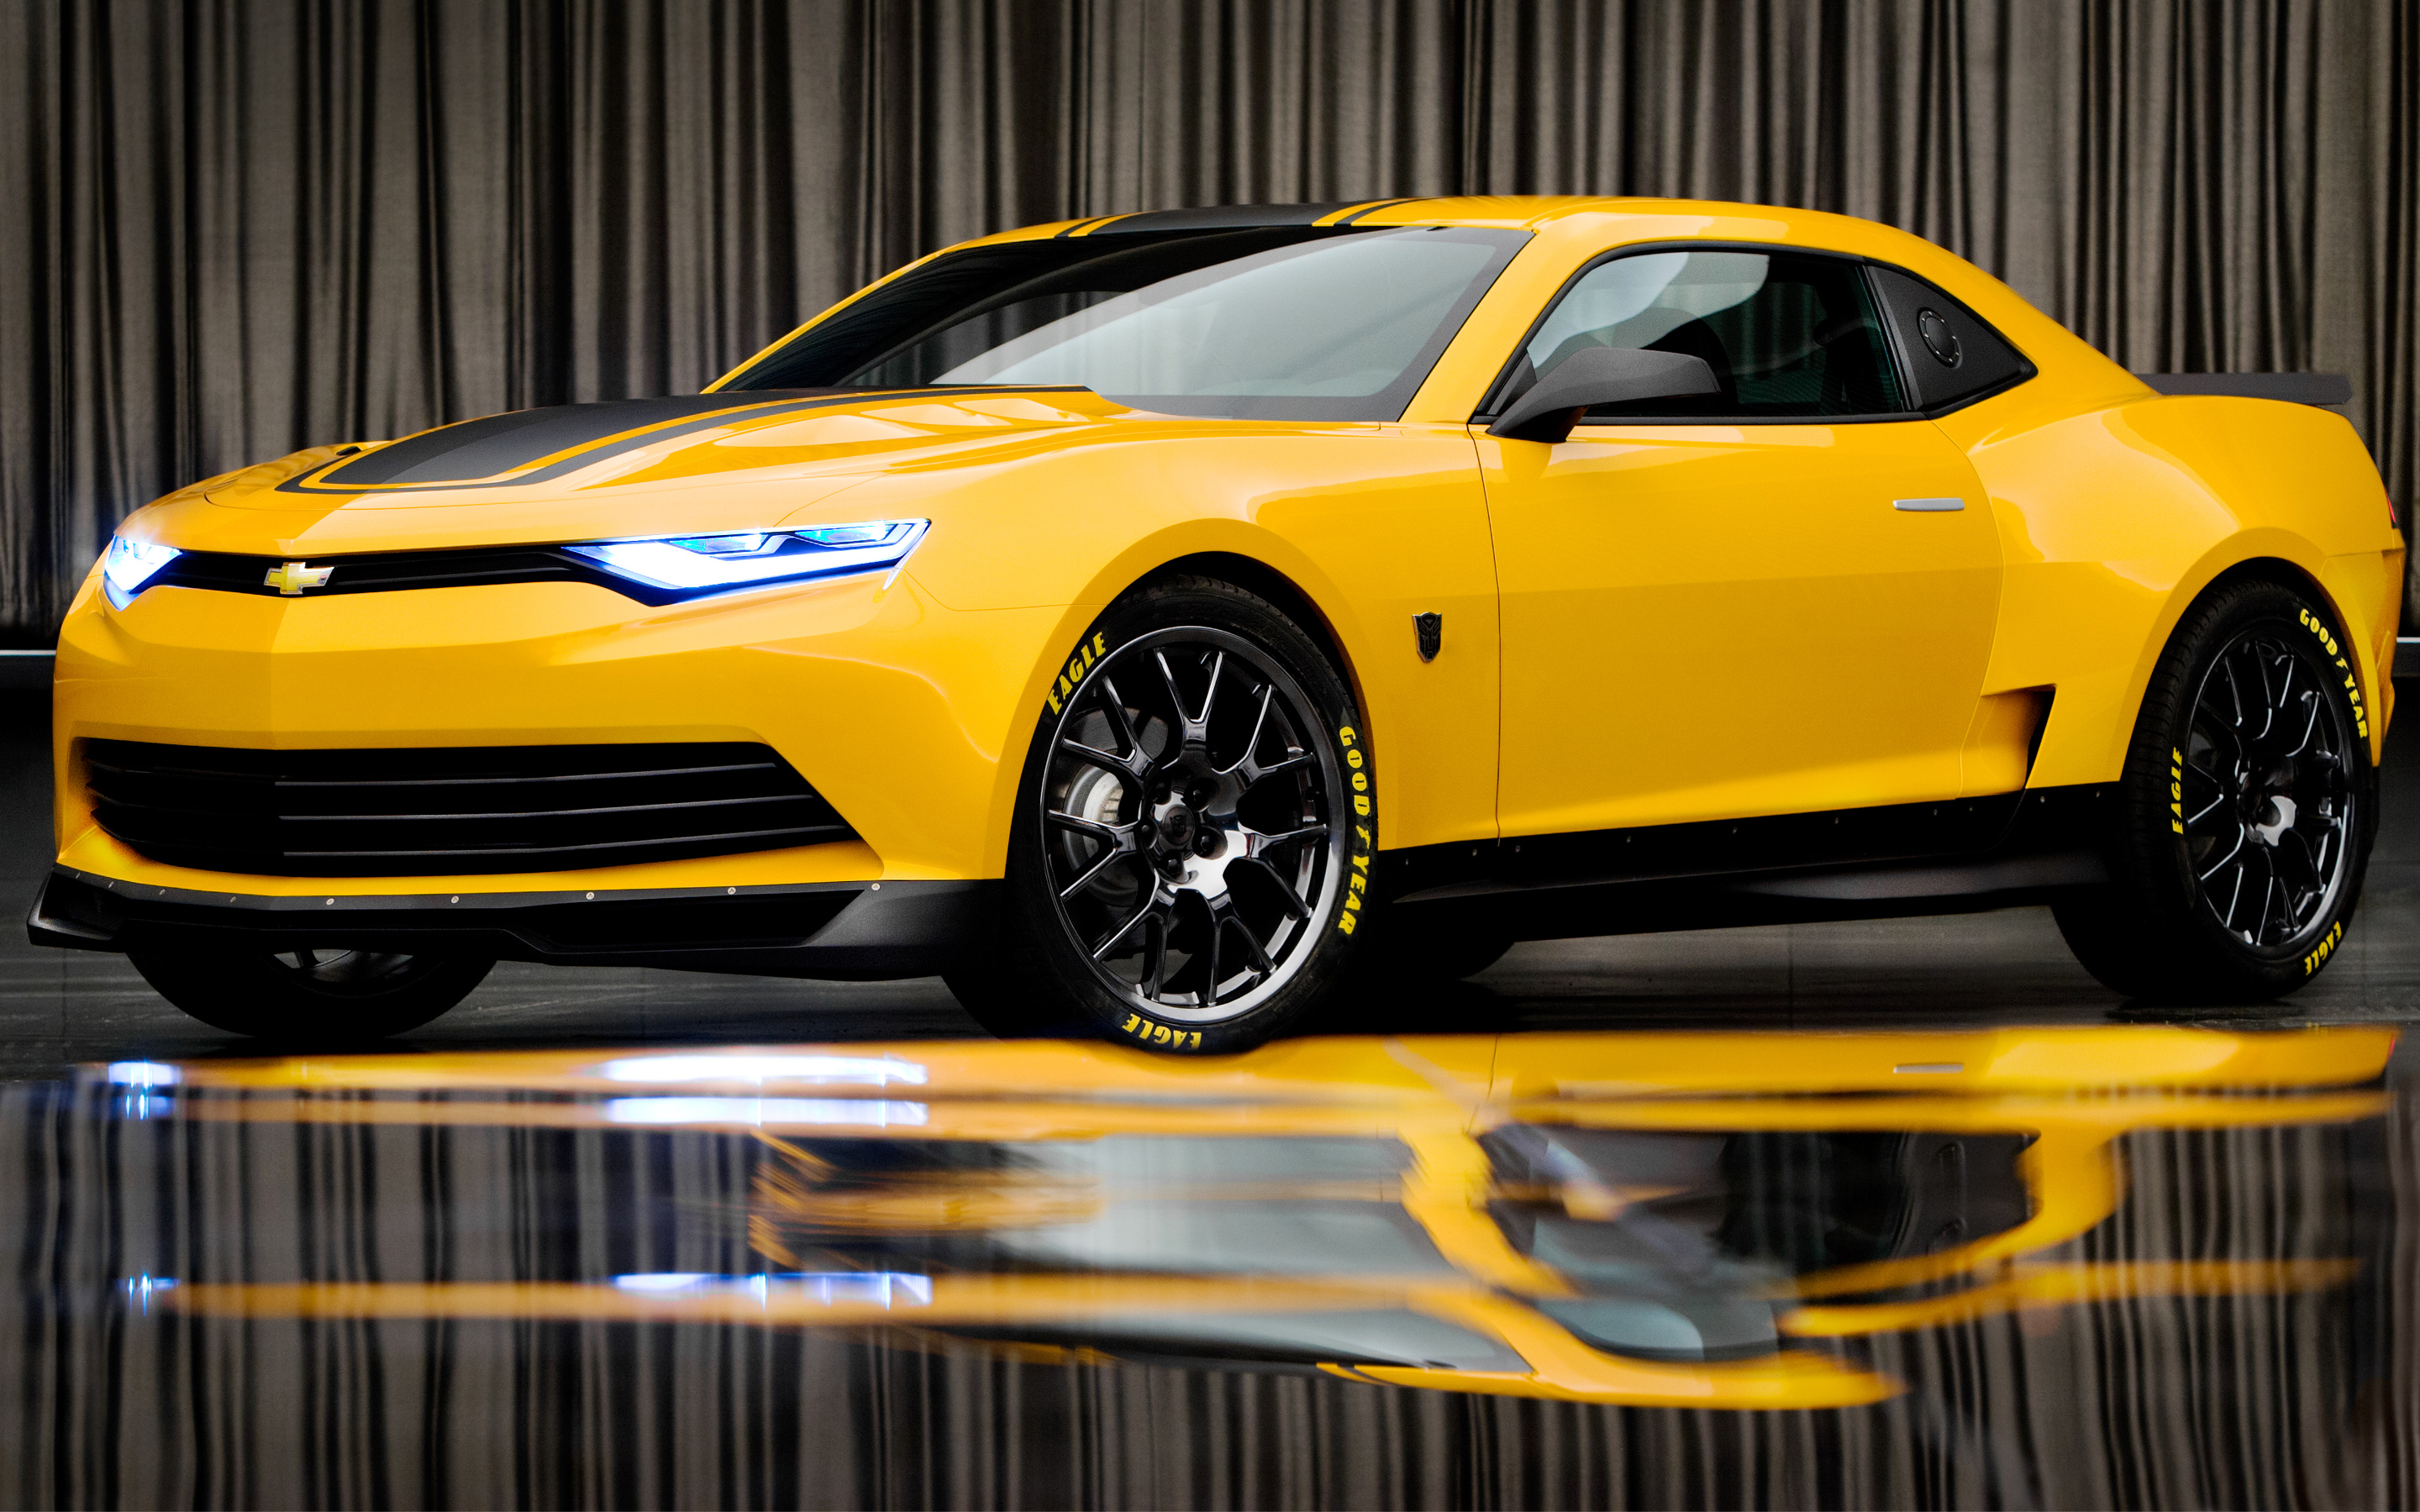 2014 Chevrolet Camaro Concept Exclusive HD Wallpapers 5322 2880x1800